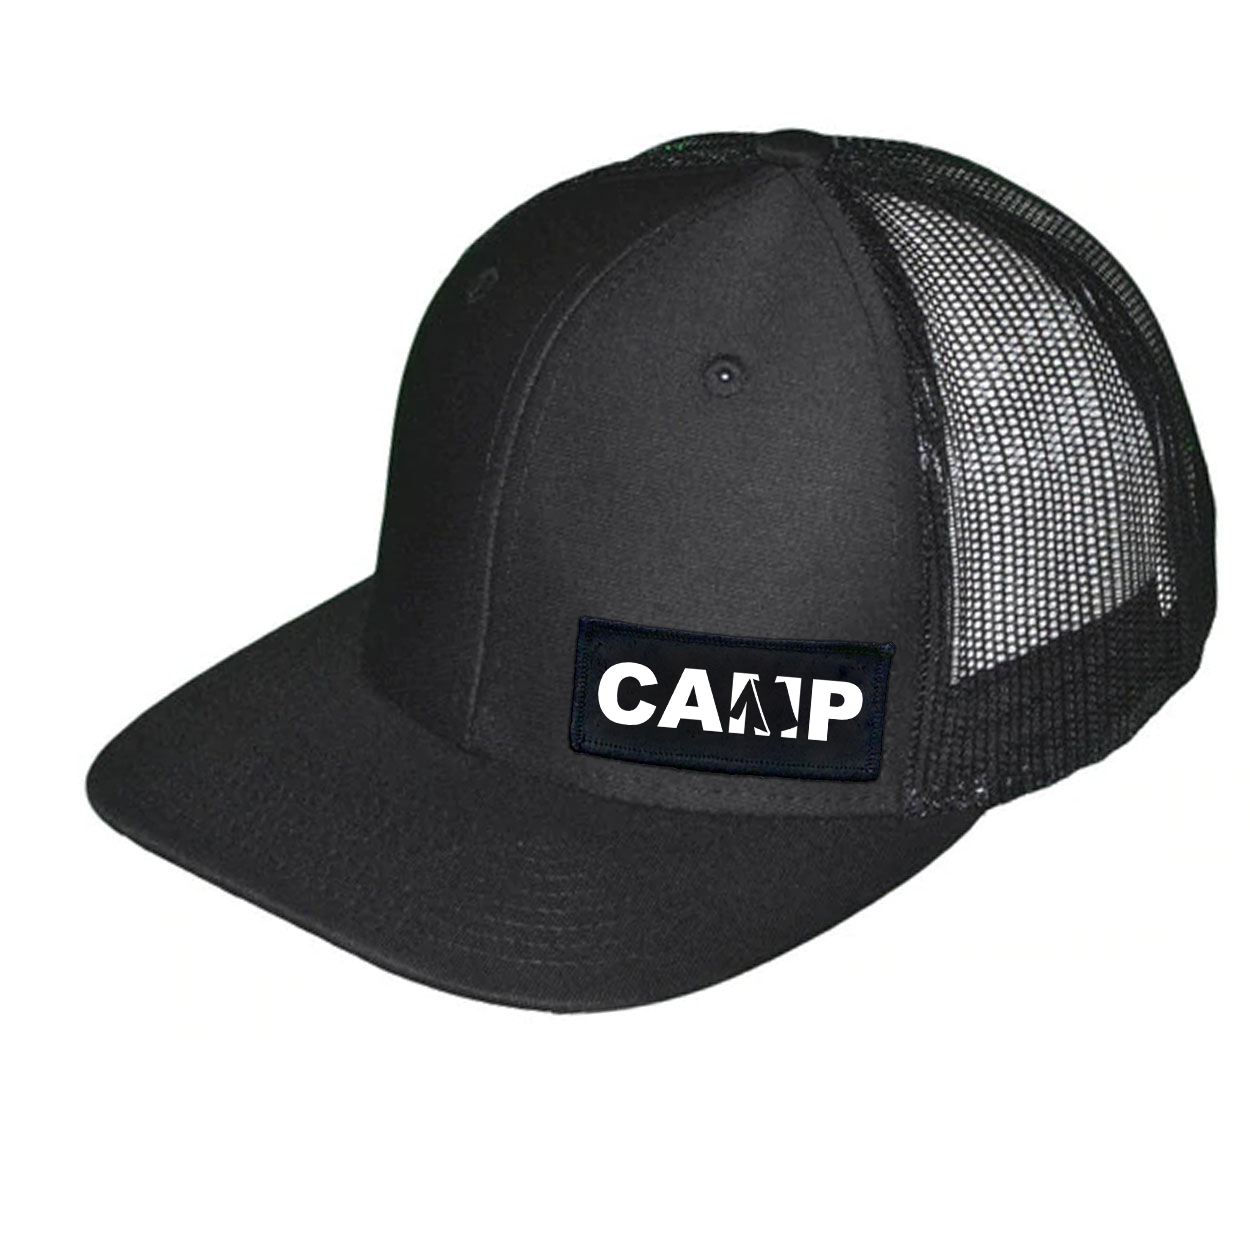 Camp Tent Logo Night Out Woven Patch Snapback Trucker Hat Black (White Logo)